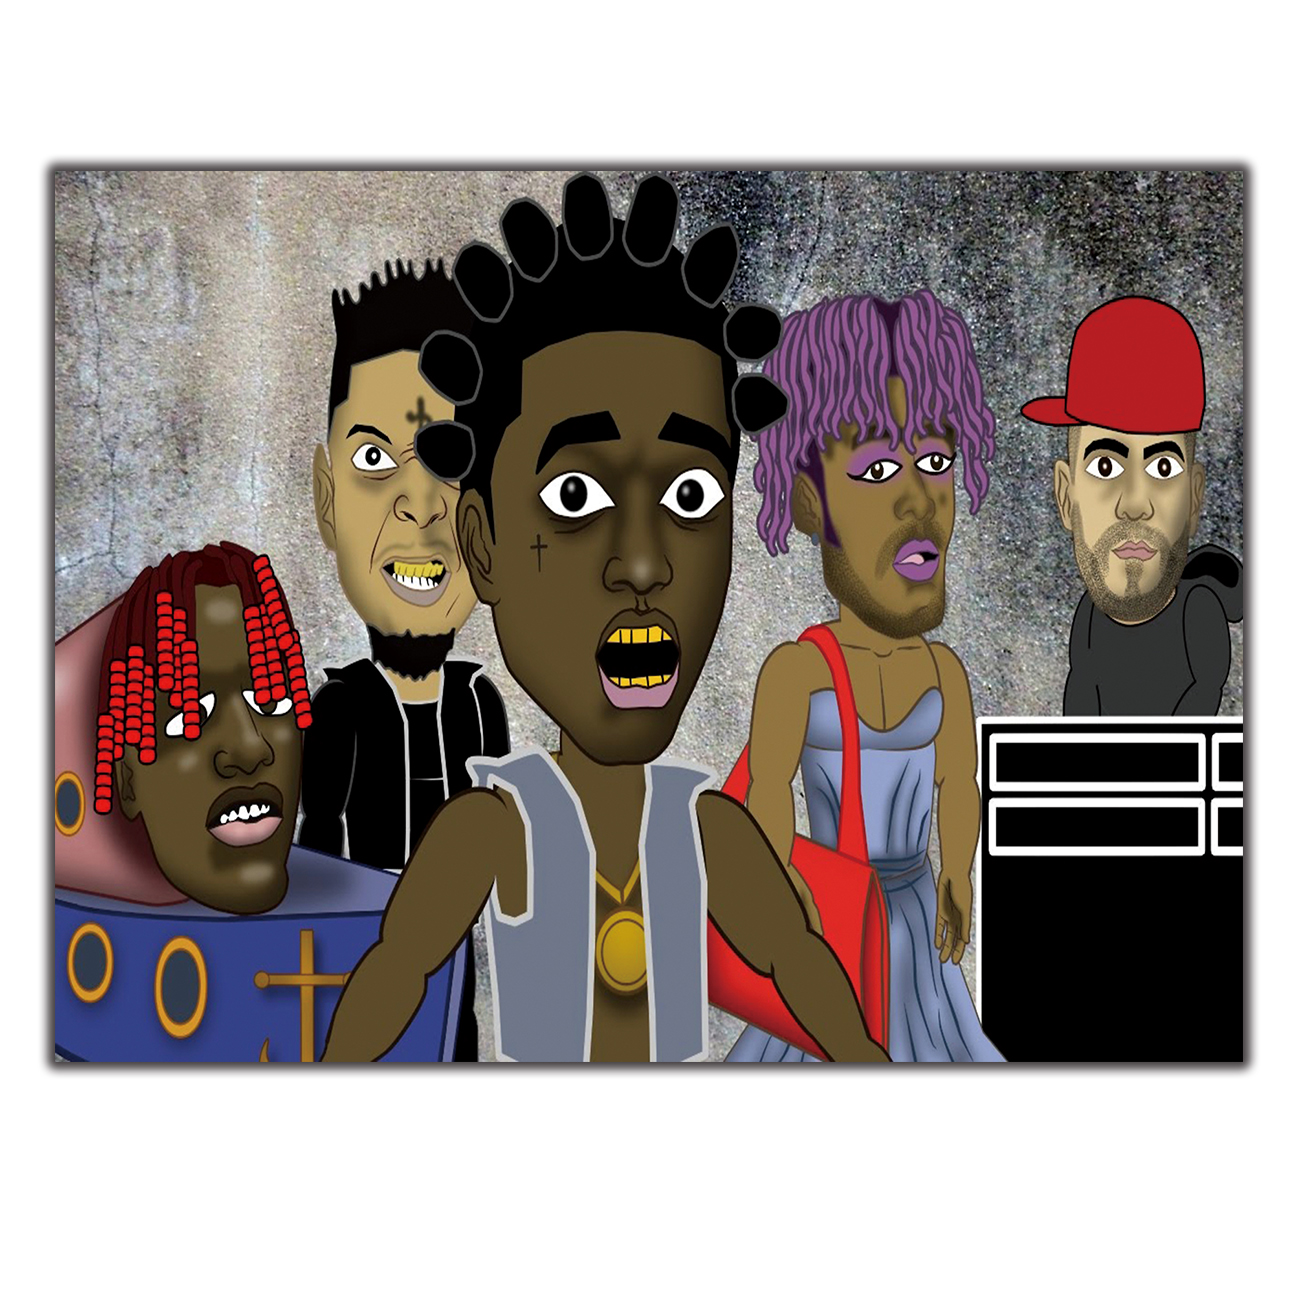 metro boomin and 21 savage poster wall decoration photo print 24 x 24 art posters art art posters